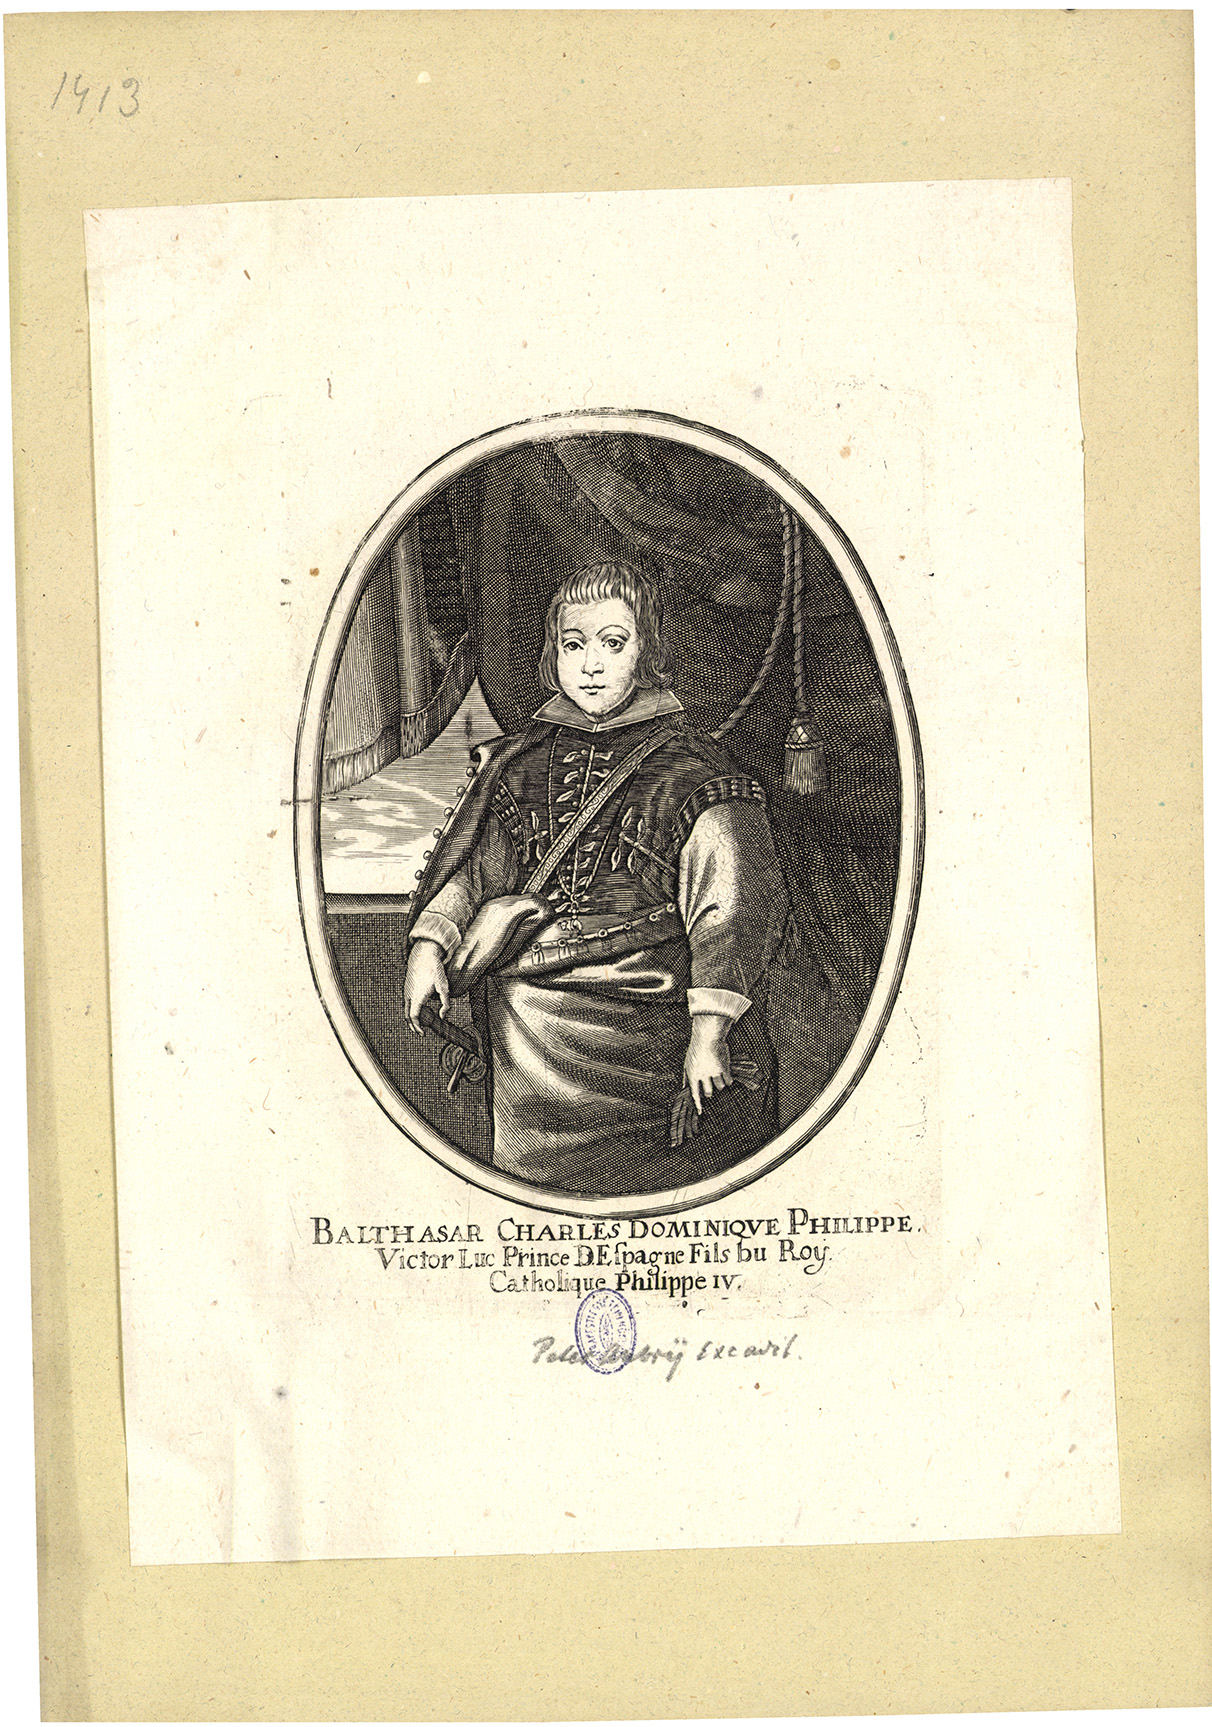 Balthasar Charles Dominique Philippe Victor Luc Prince DEspagne fils du Roy